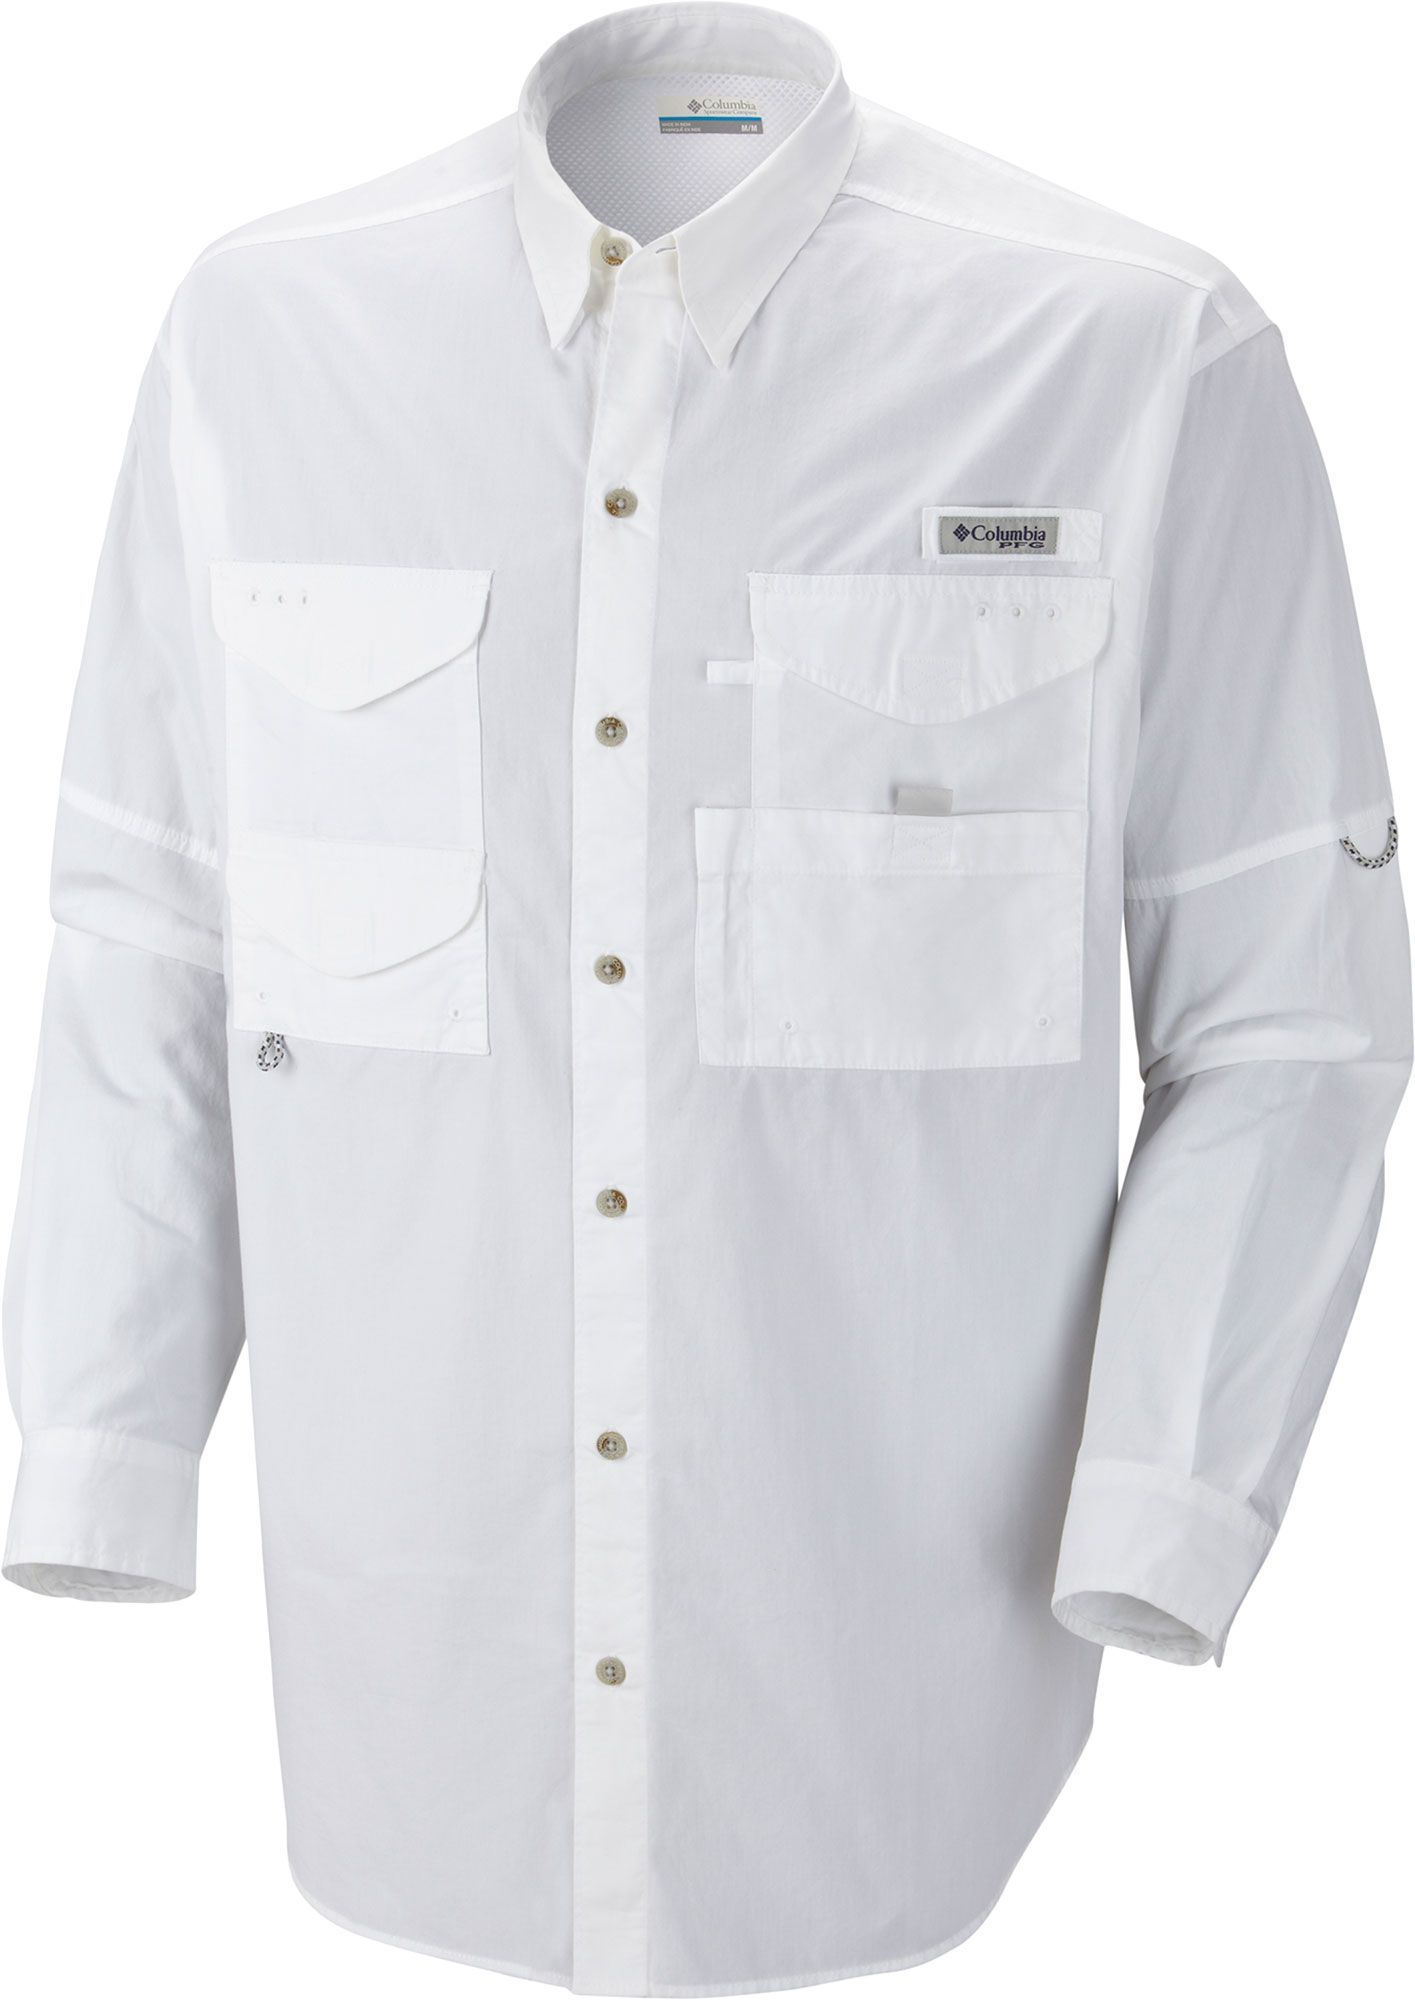 347295d4 Columbia Men's PFG Bonehead Long Sleeve Shirt | Products | Shirts ...